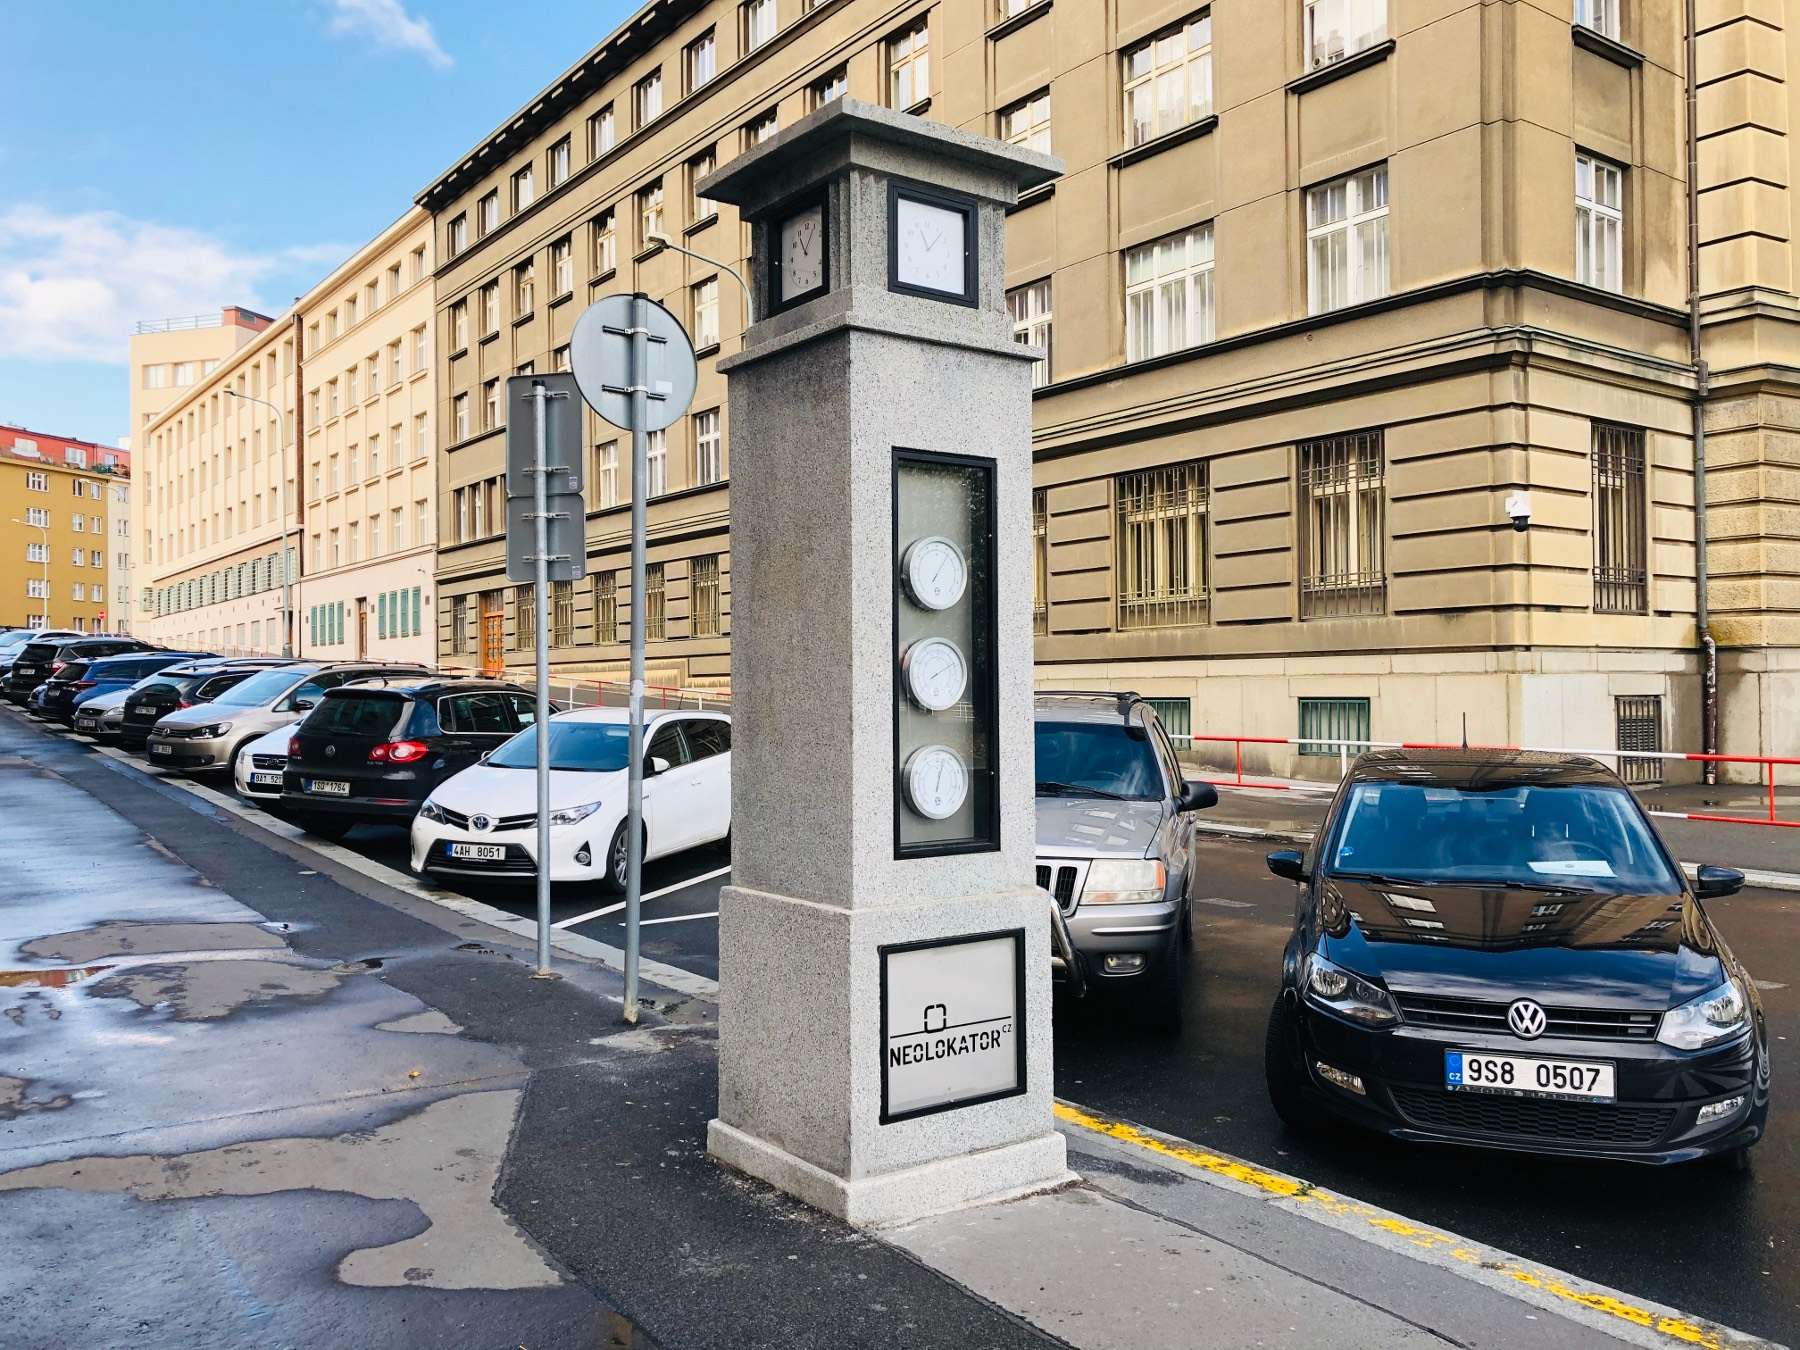 Century-old Prague meteorological column restored to former glory | Radio Prague International